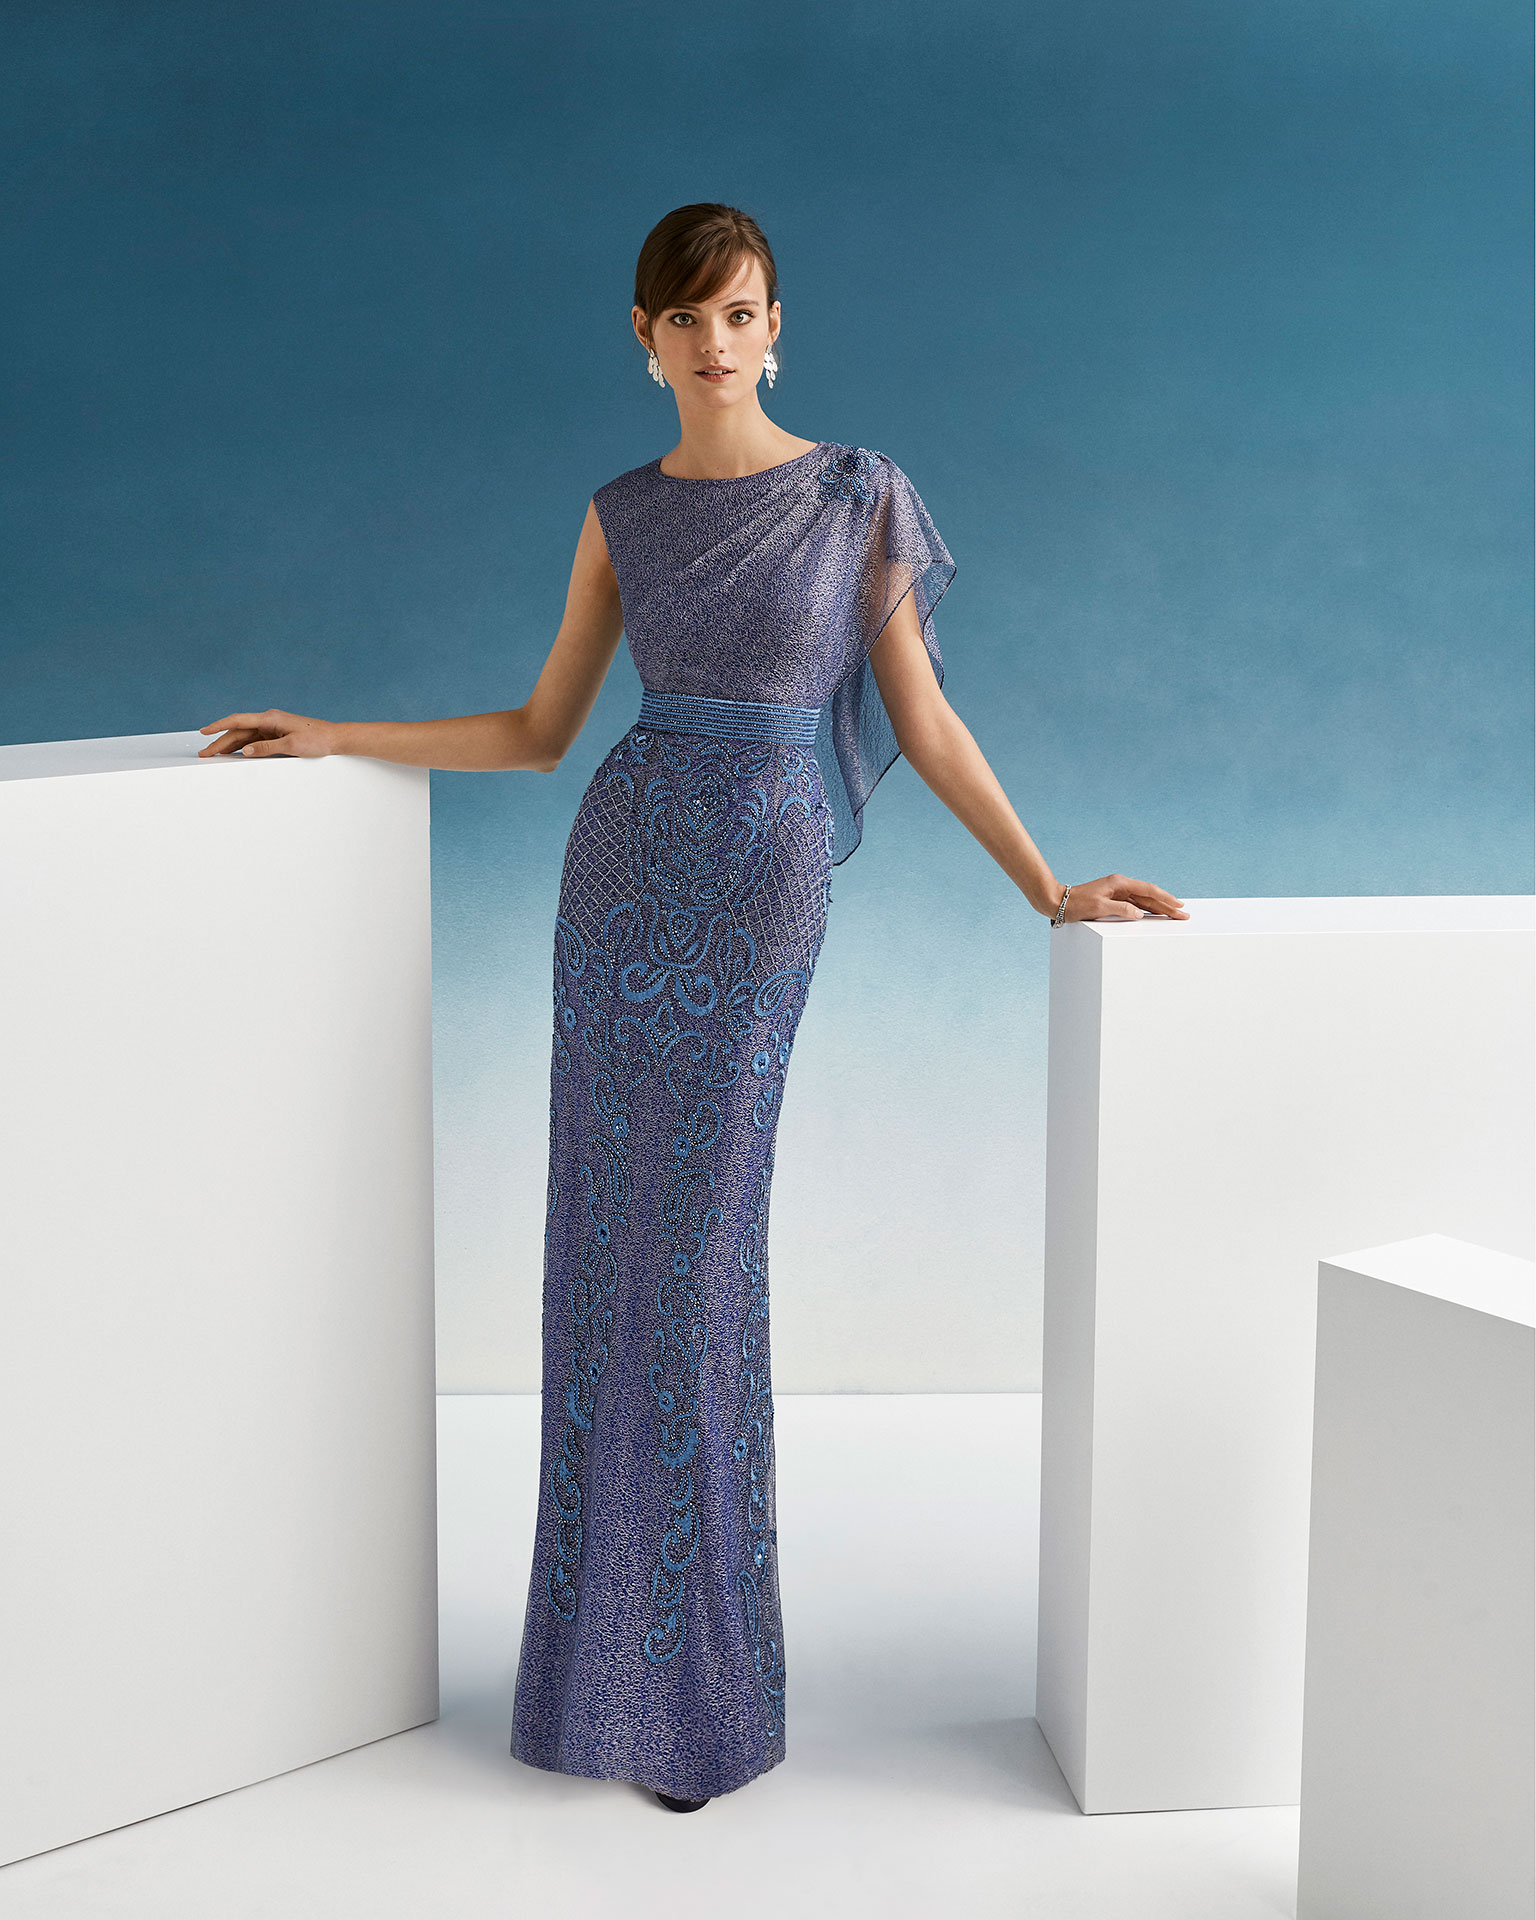 454d1d3cb4c9b Beaded cocktail dress. With mesh bodice with single diaphanous sleeve and  beaded skirt. 2019